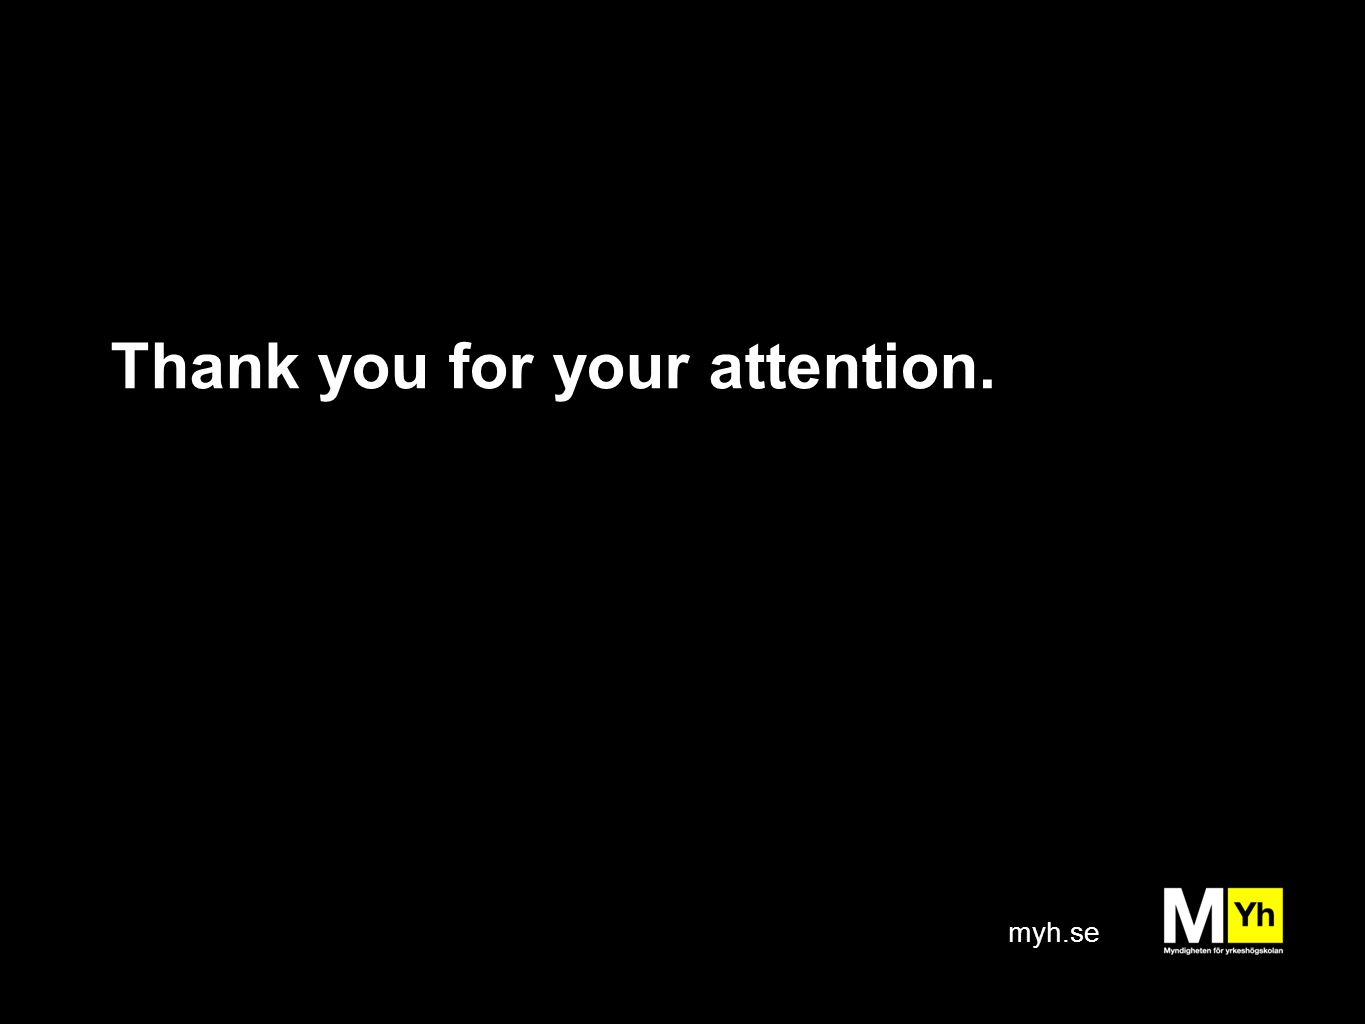 myh.se Thank you for your attention.